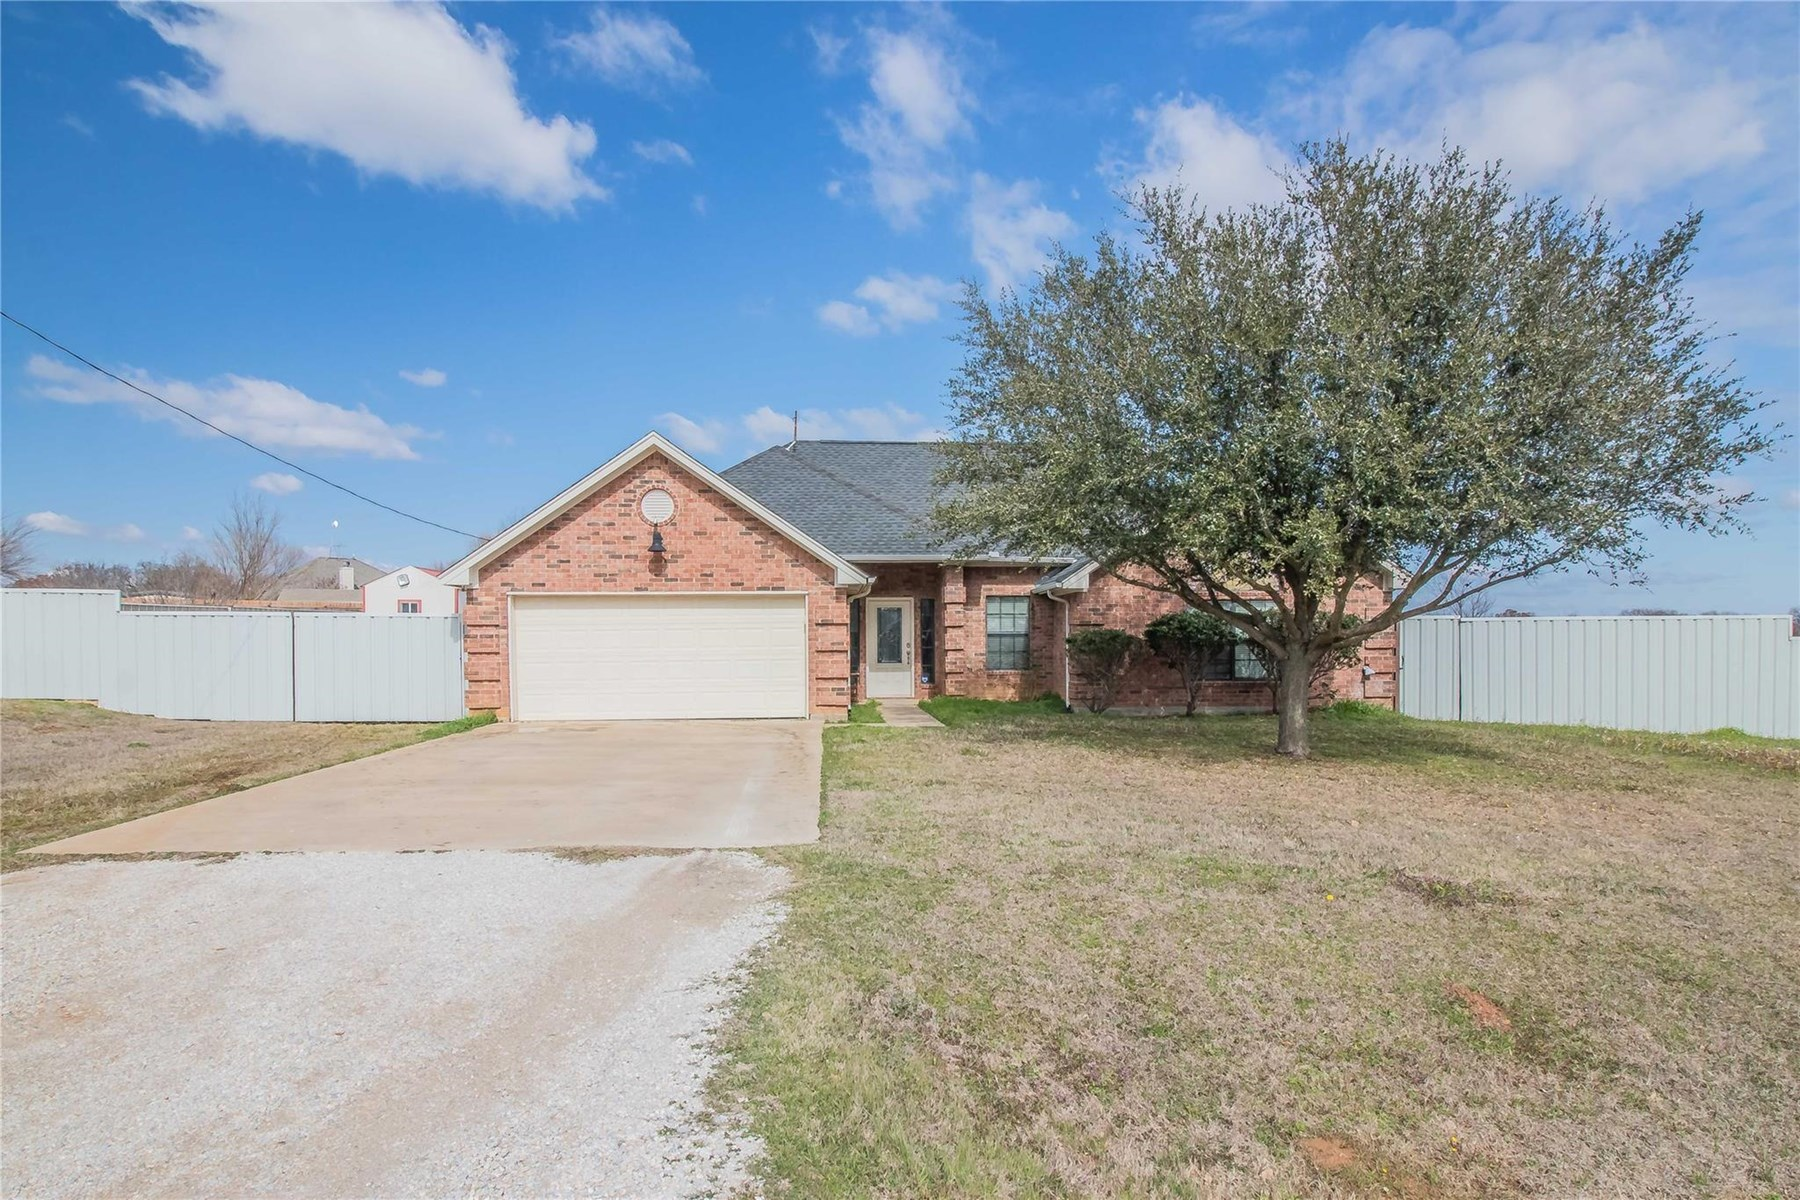 For Sale! Country Home Springtown Tx